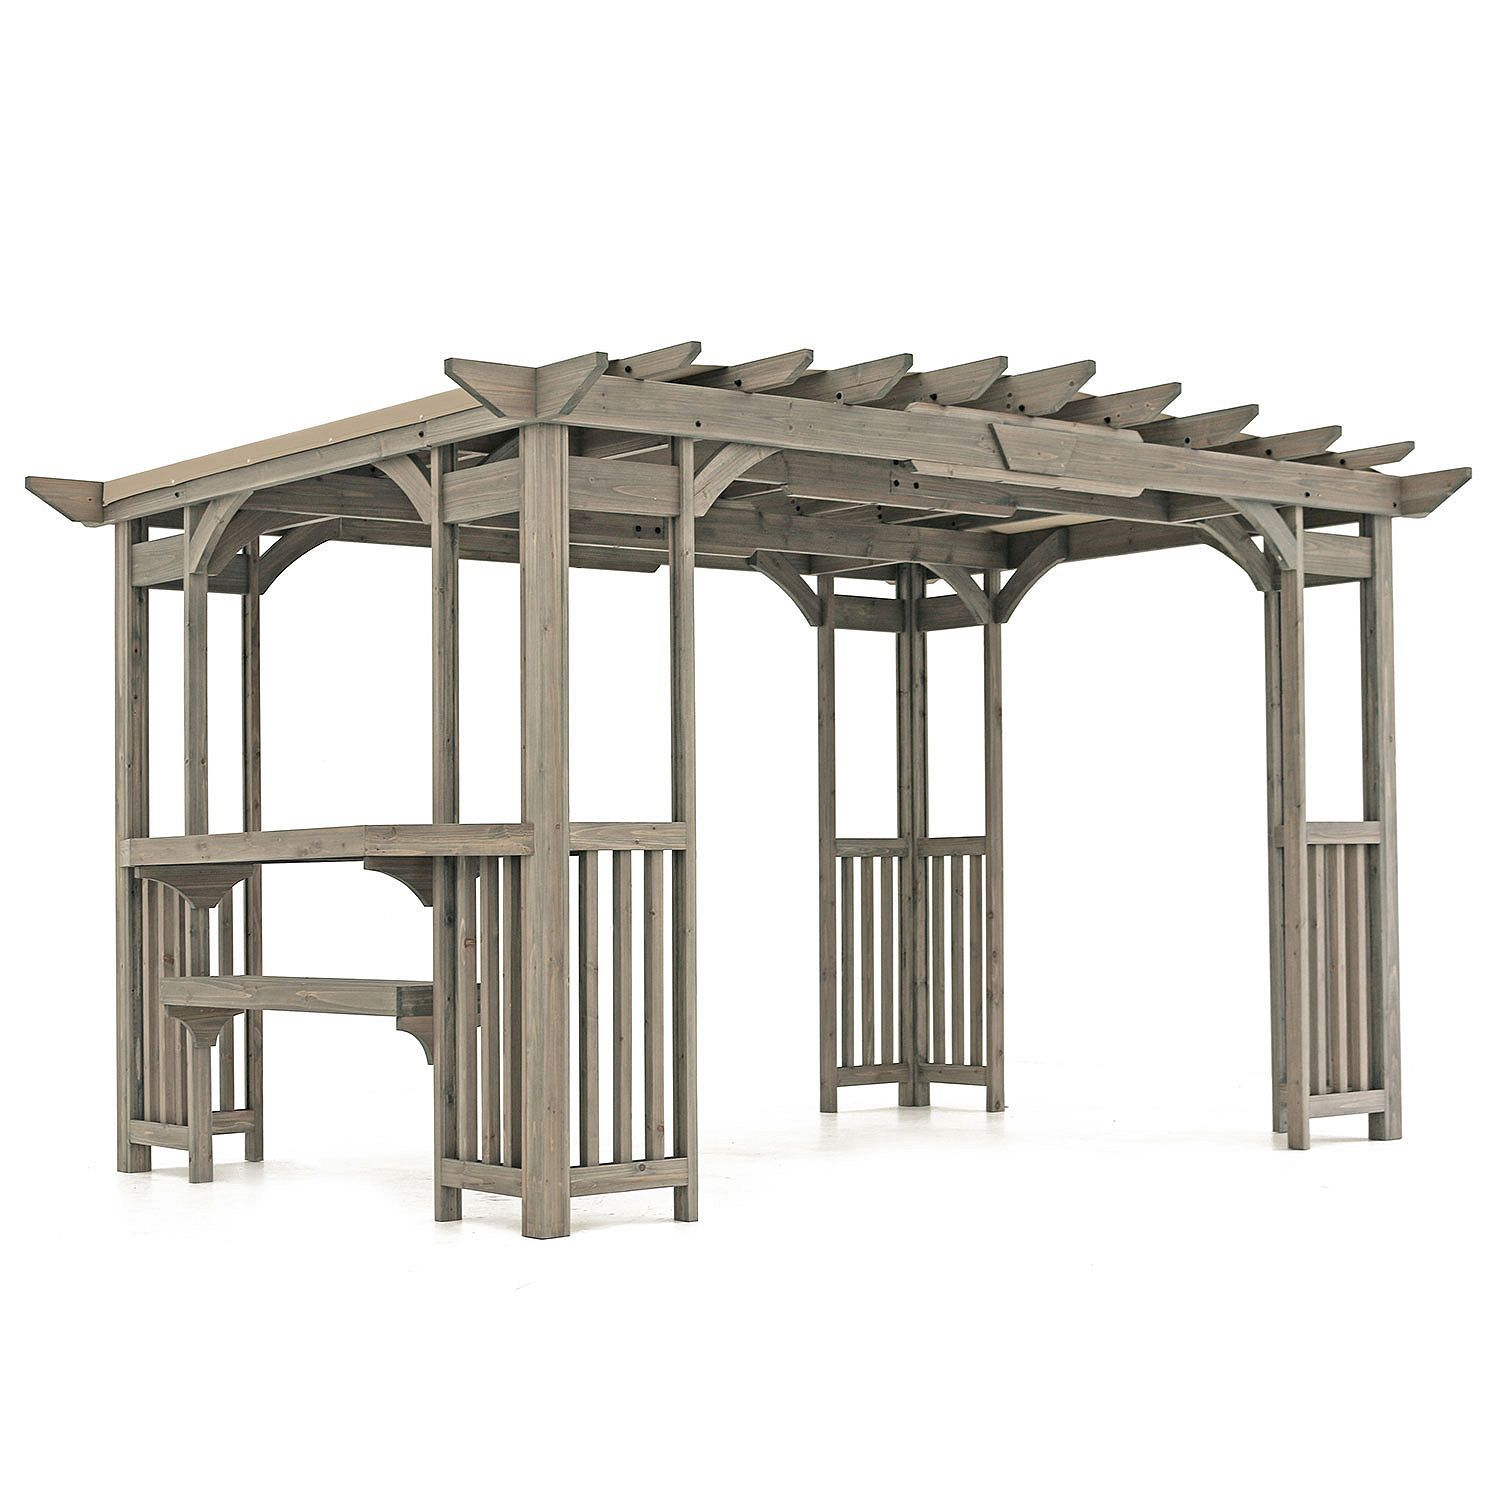 Charleston 14 X 10 Pergola With Sunshade Sam S Club Pergola Cedar Pergola Outdoor Pergola